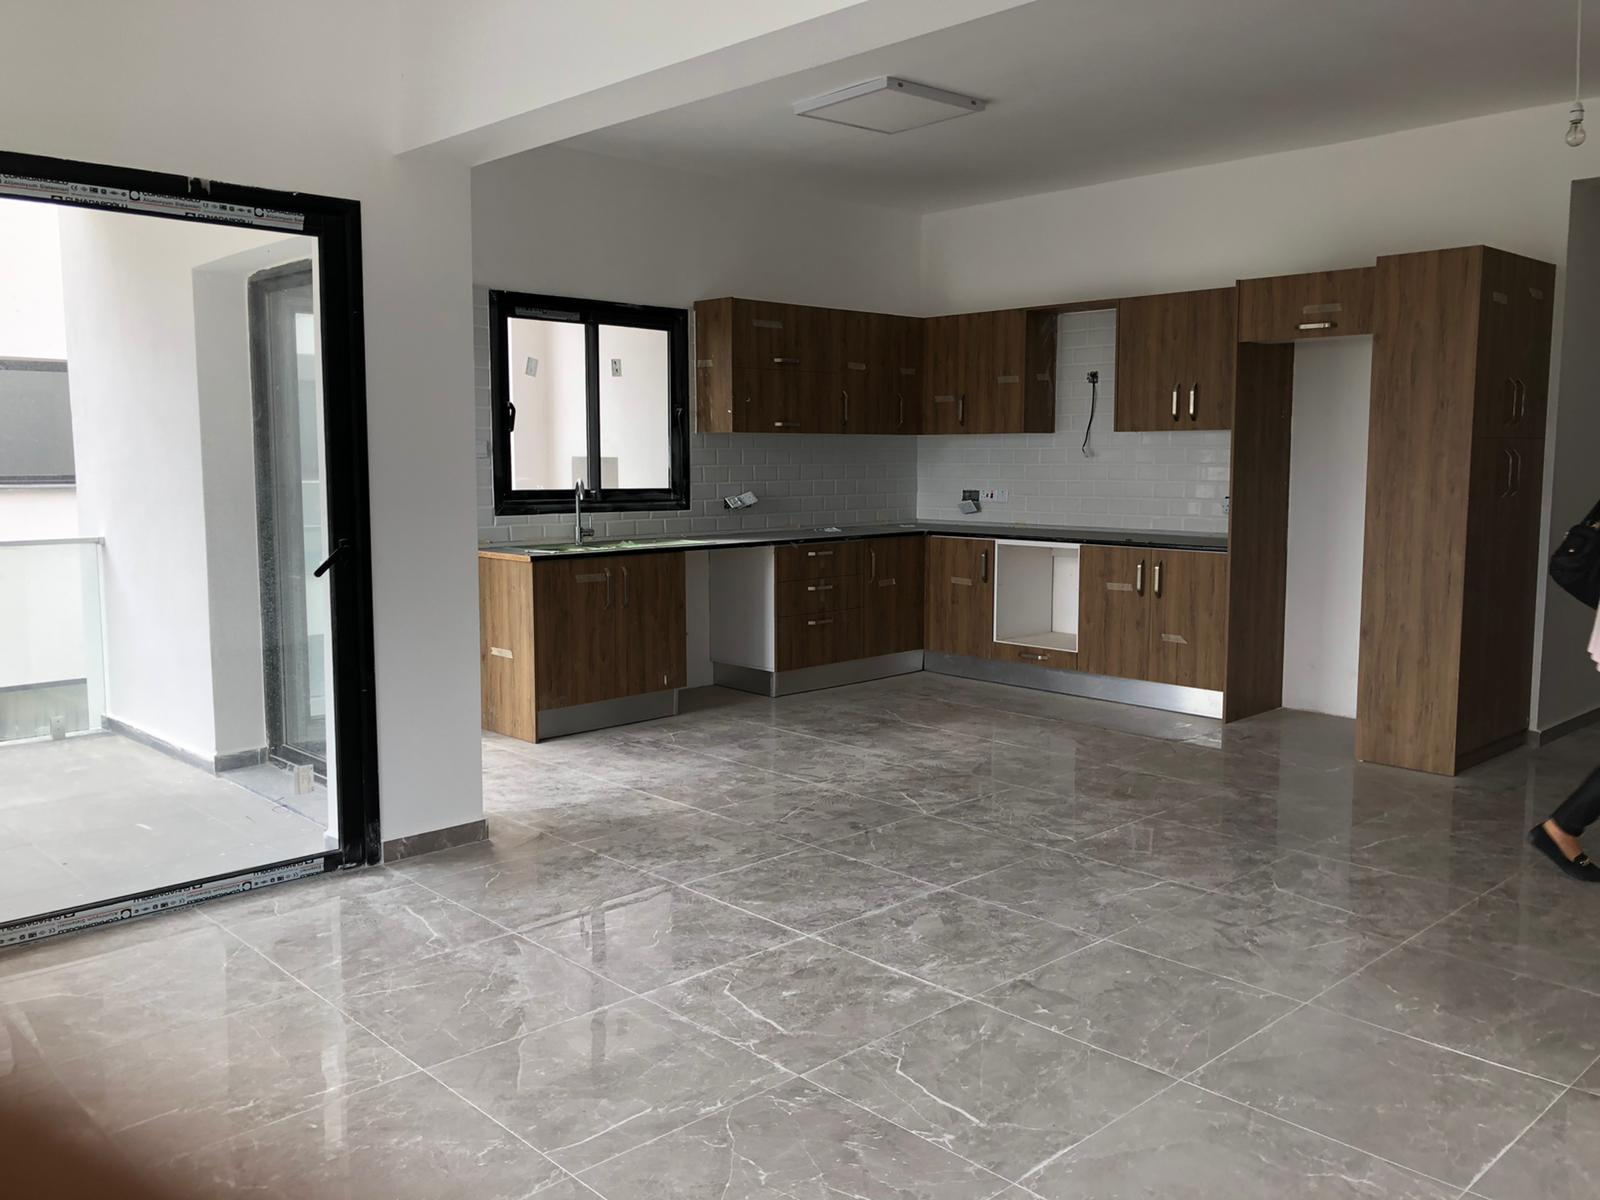 TURKISH-TITLE-TWO-BEDROOM-APARTMENTS---KÜÇÜK-KAYMAKLI-LKK11B